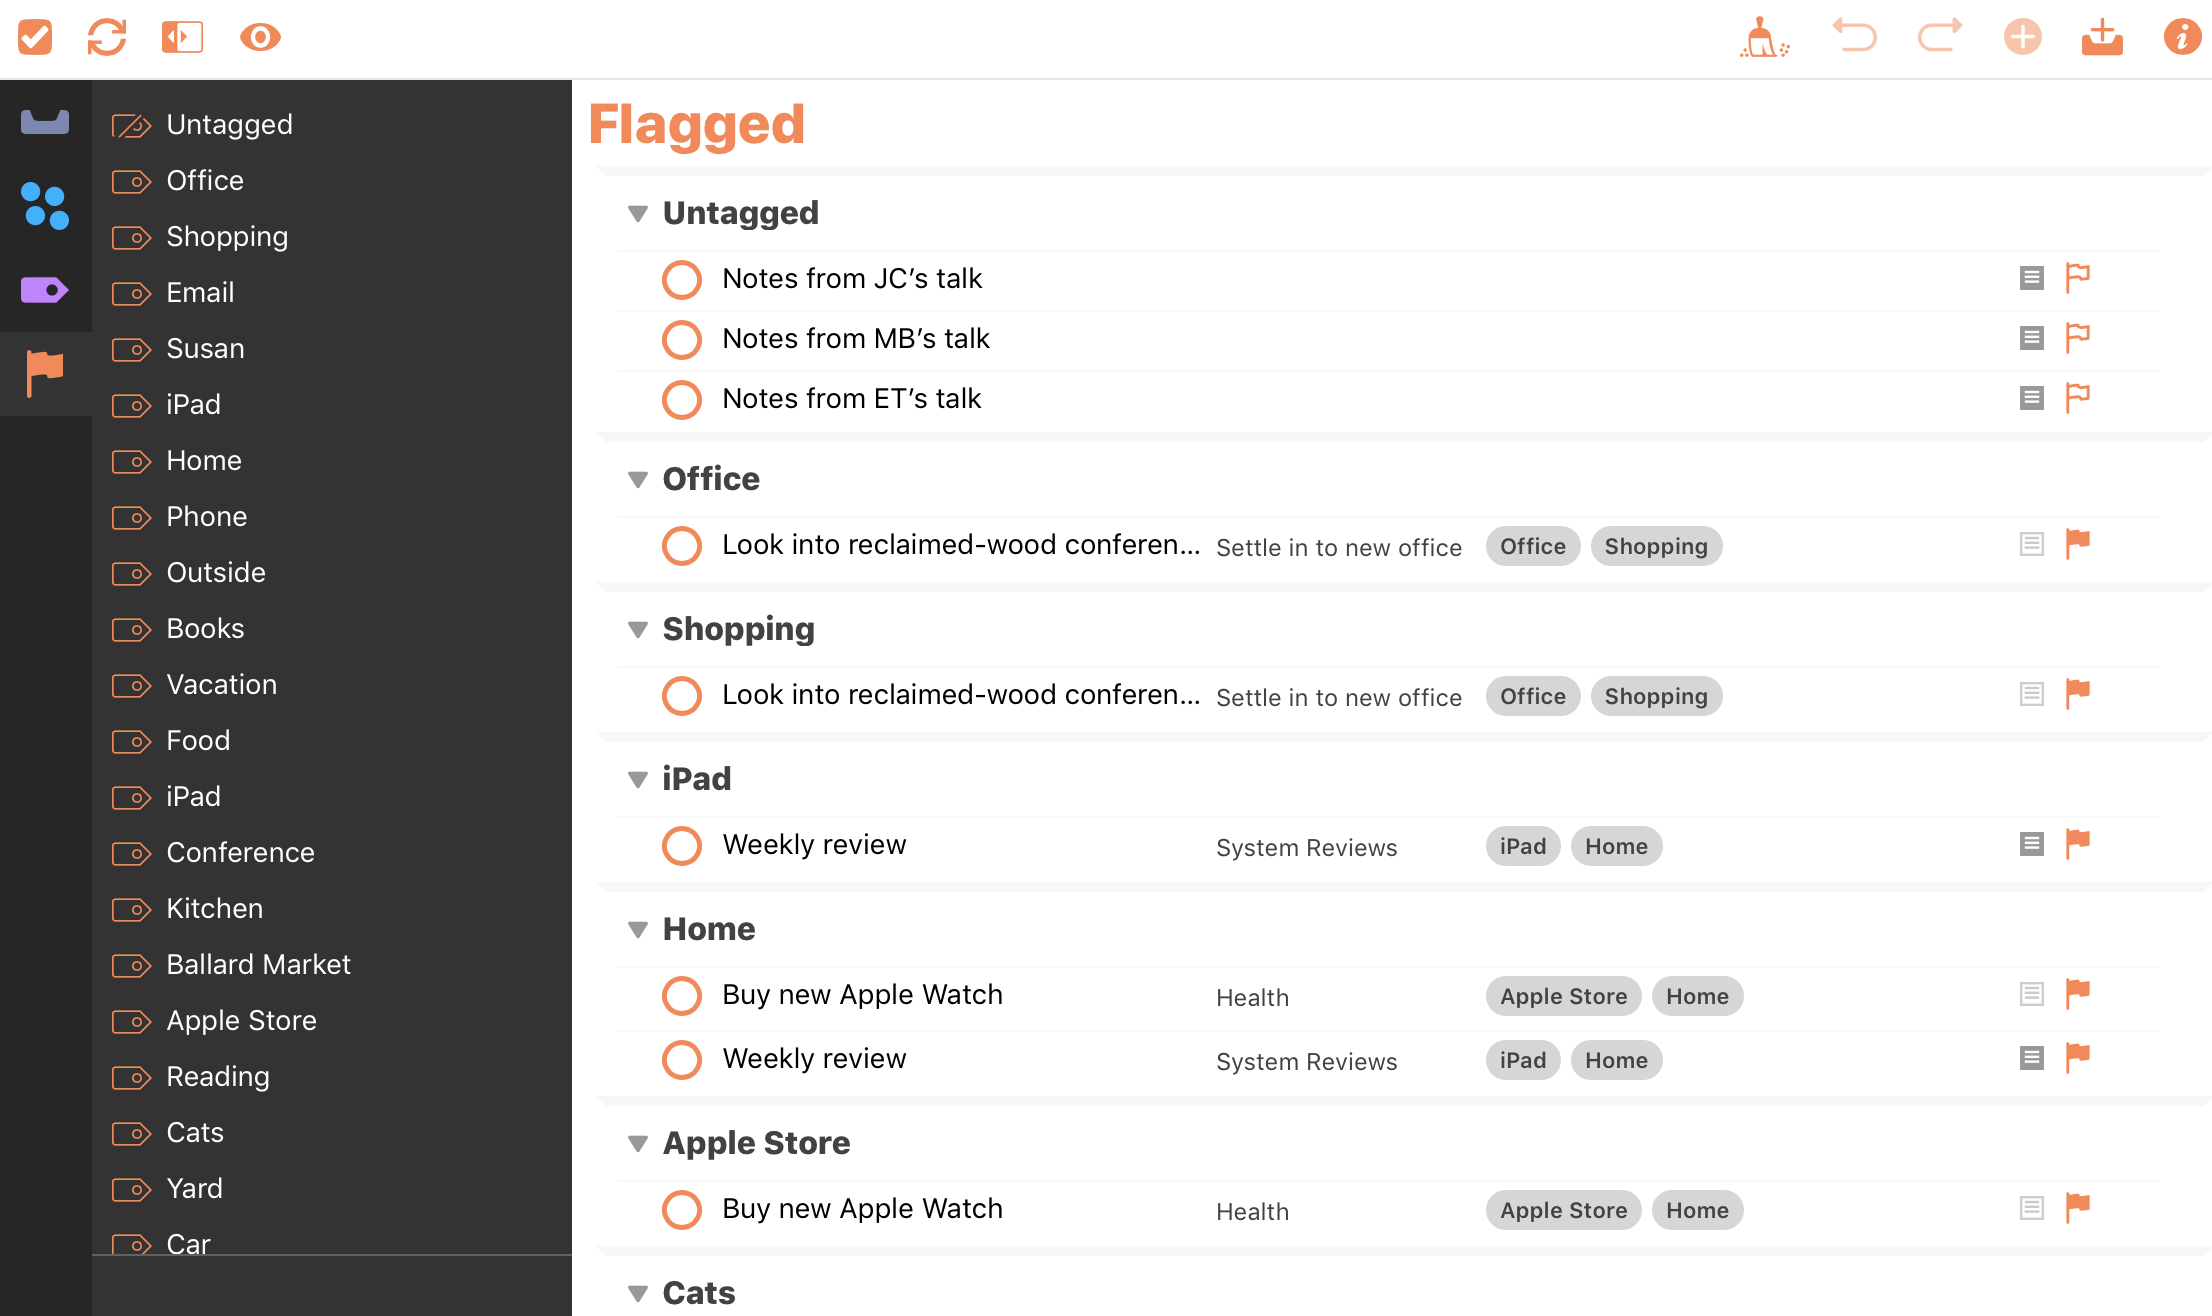 Screenshot of the OmniFocus Flagged perspective, showing a number of flagged actions.